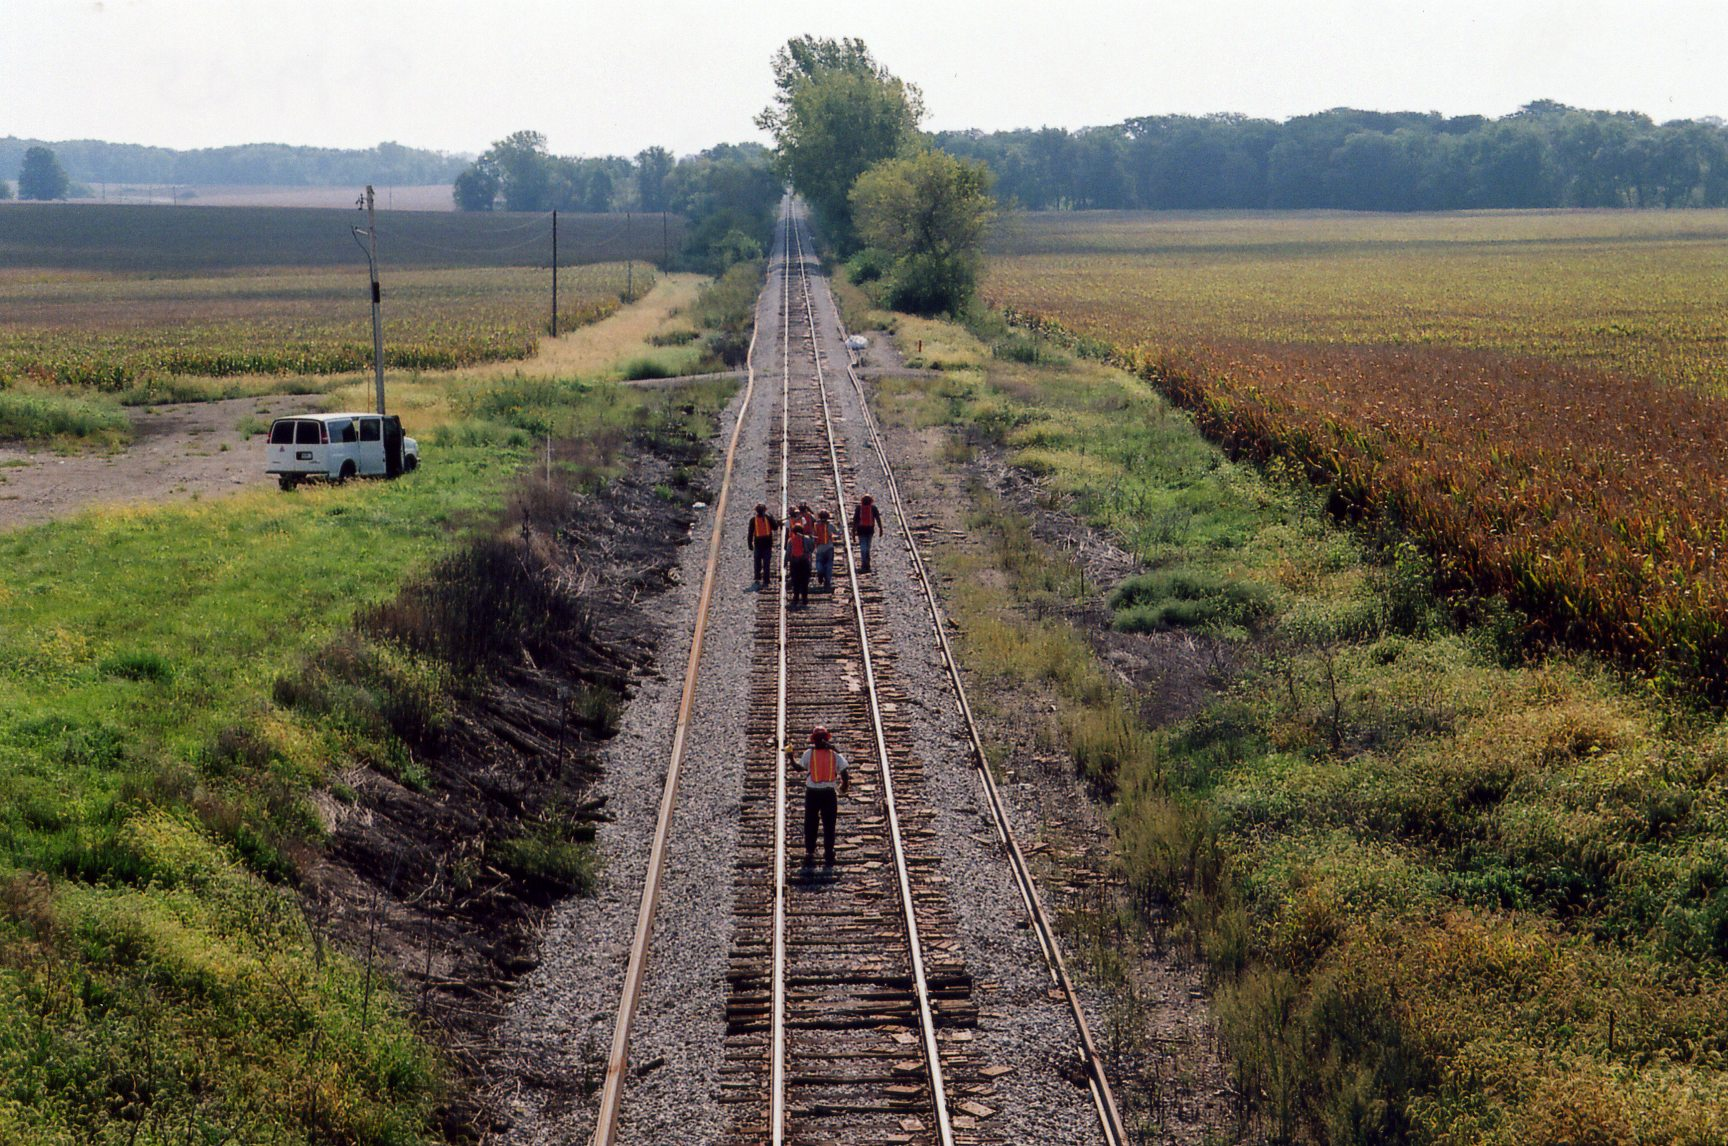 Track gang heading for their ride, mp 224.8, Sept. 19, 2005.